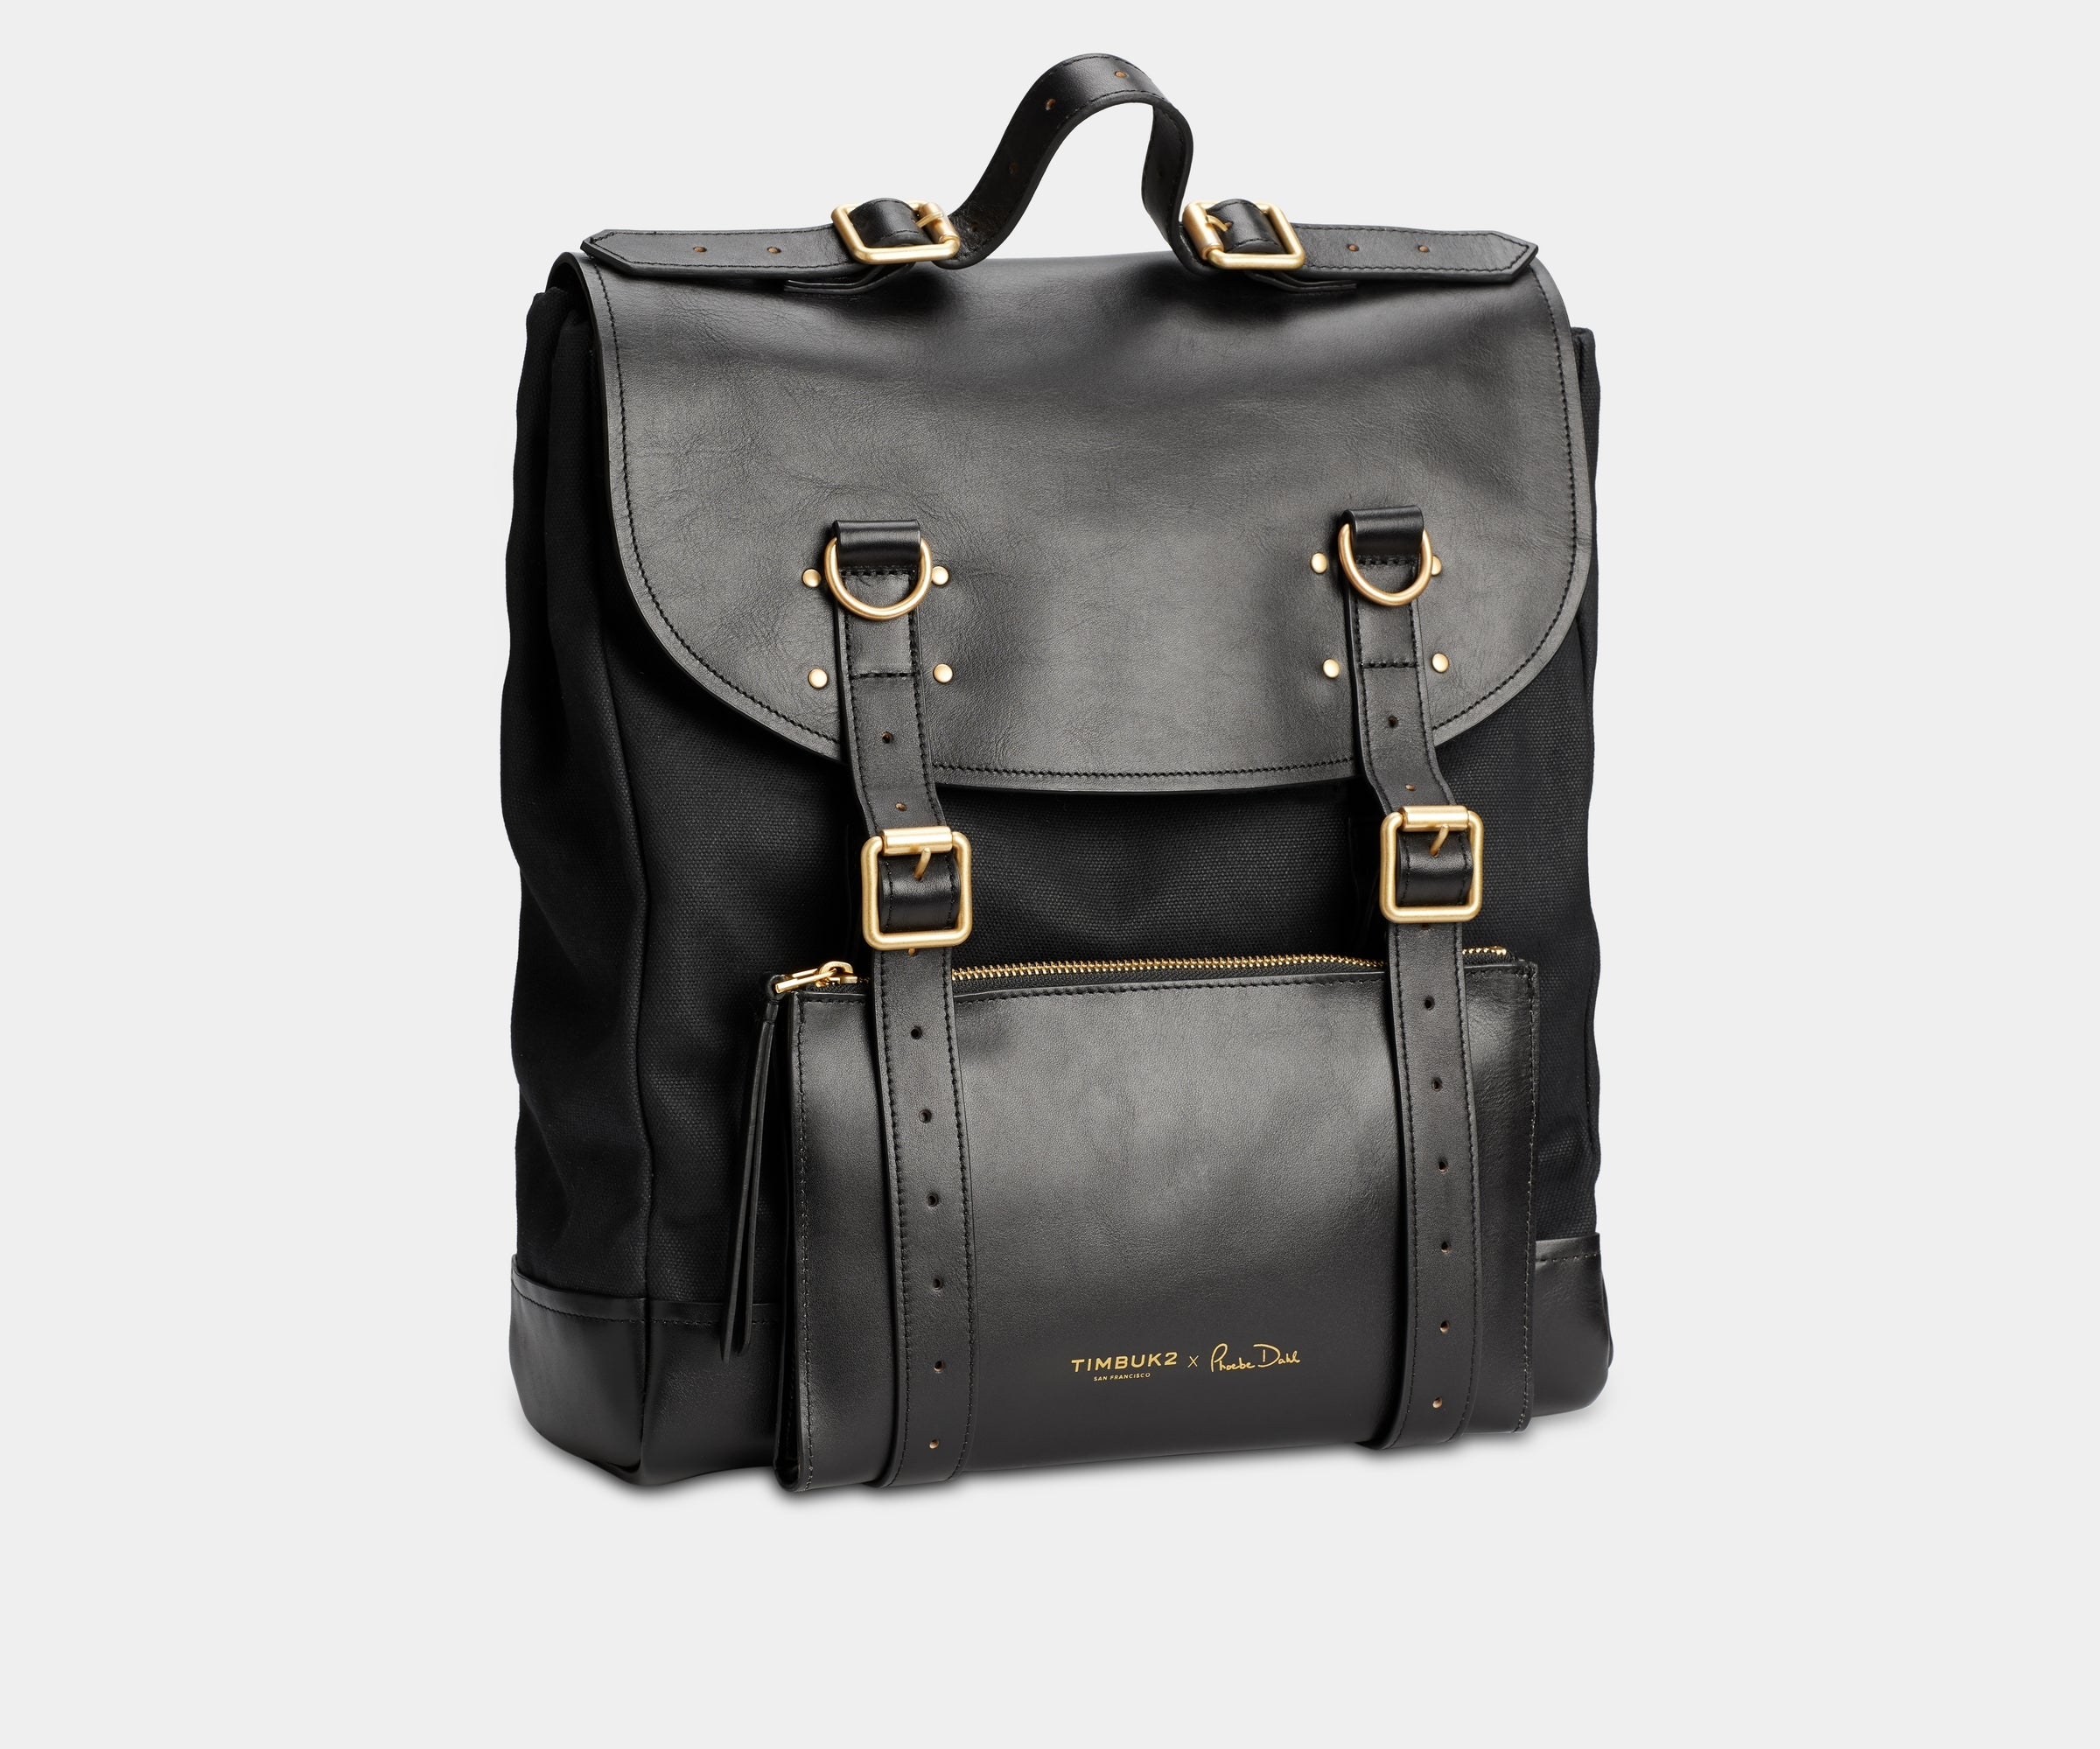 c338155fcabf Work, Travel & Lifestyle Backpacks for Women | Timbuk2